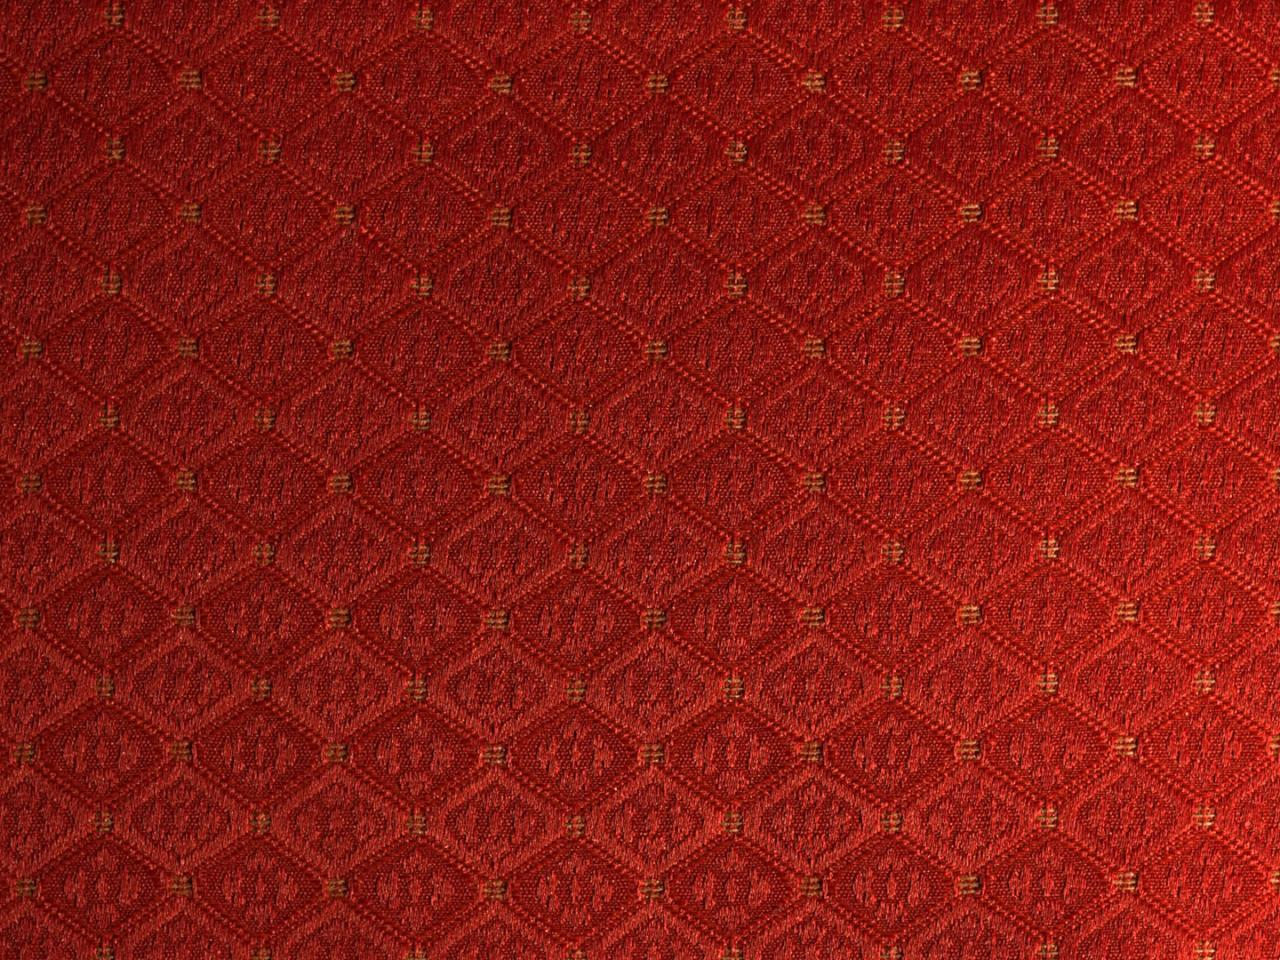 Red Chinese Wallpaper Designs 10 Of 20 With Hd Resolution